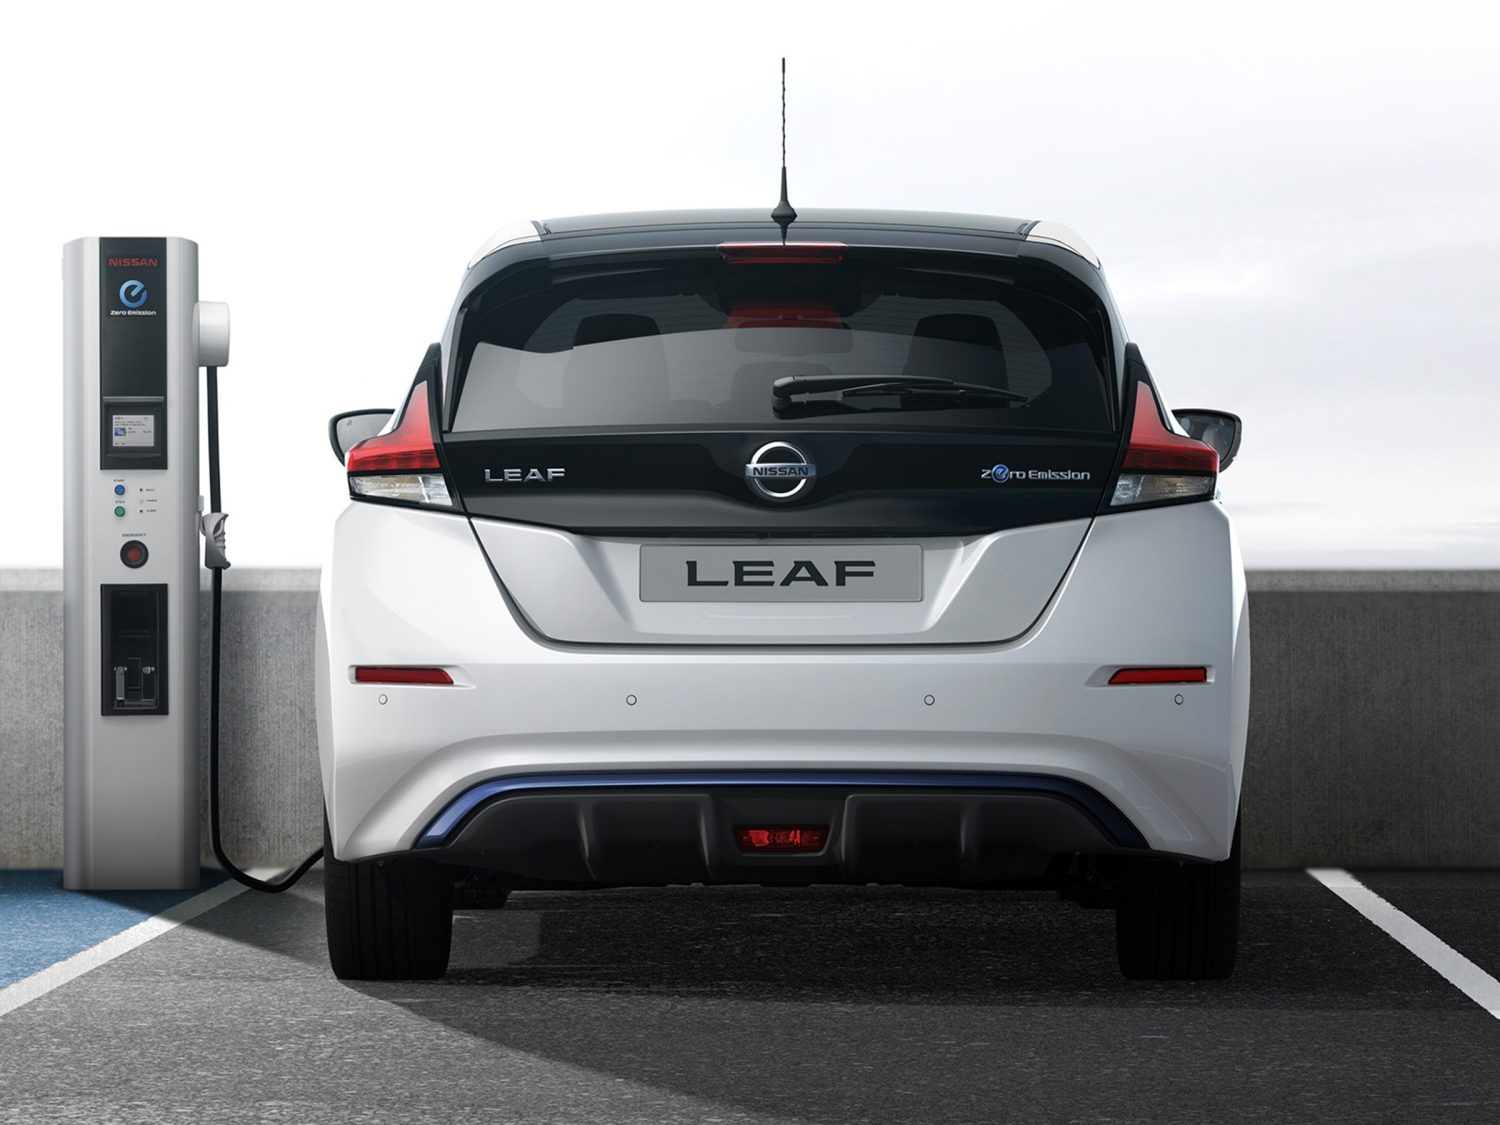 New Nissan LEAF charging at a public charger